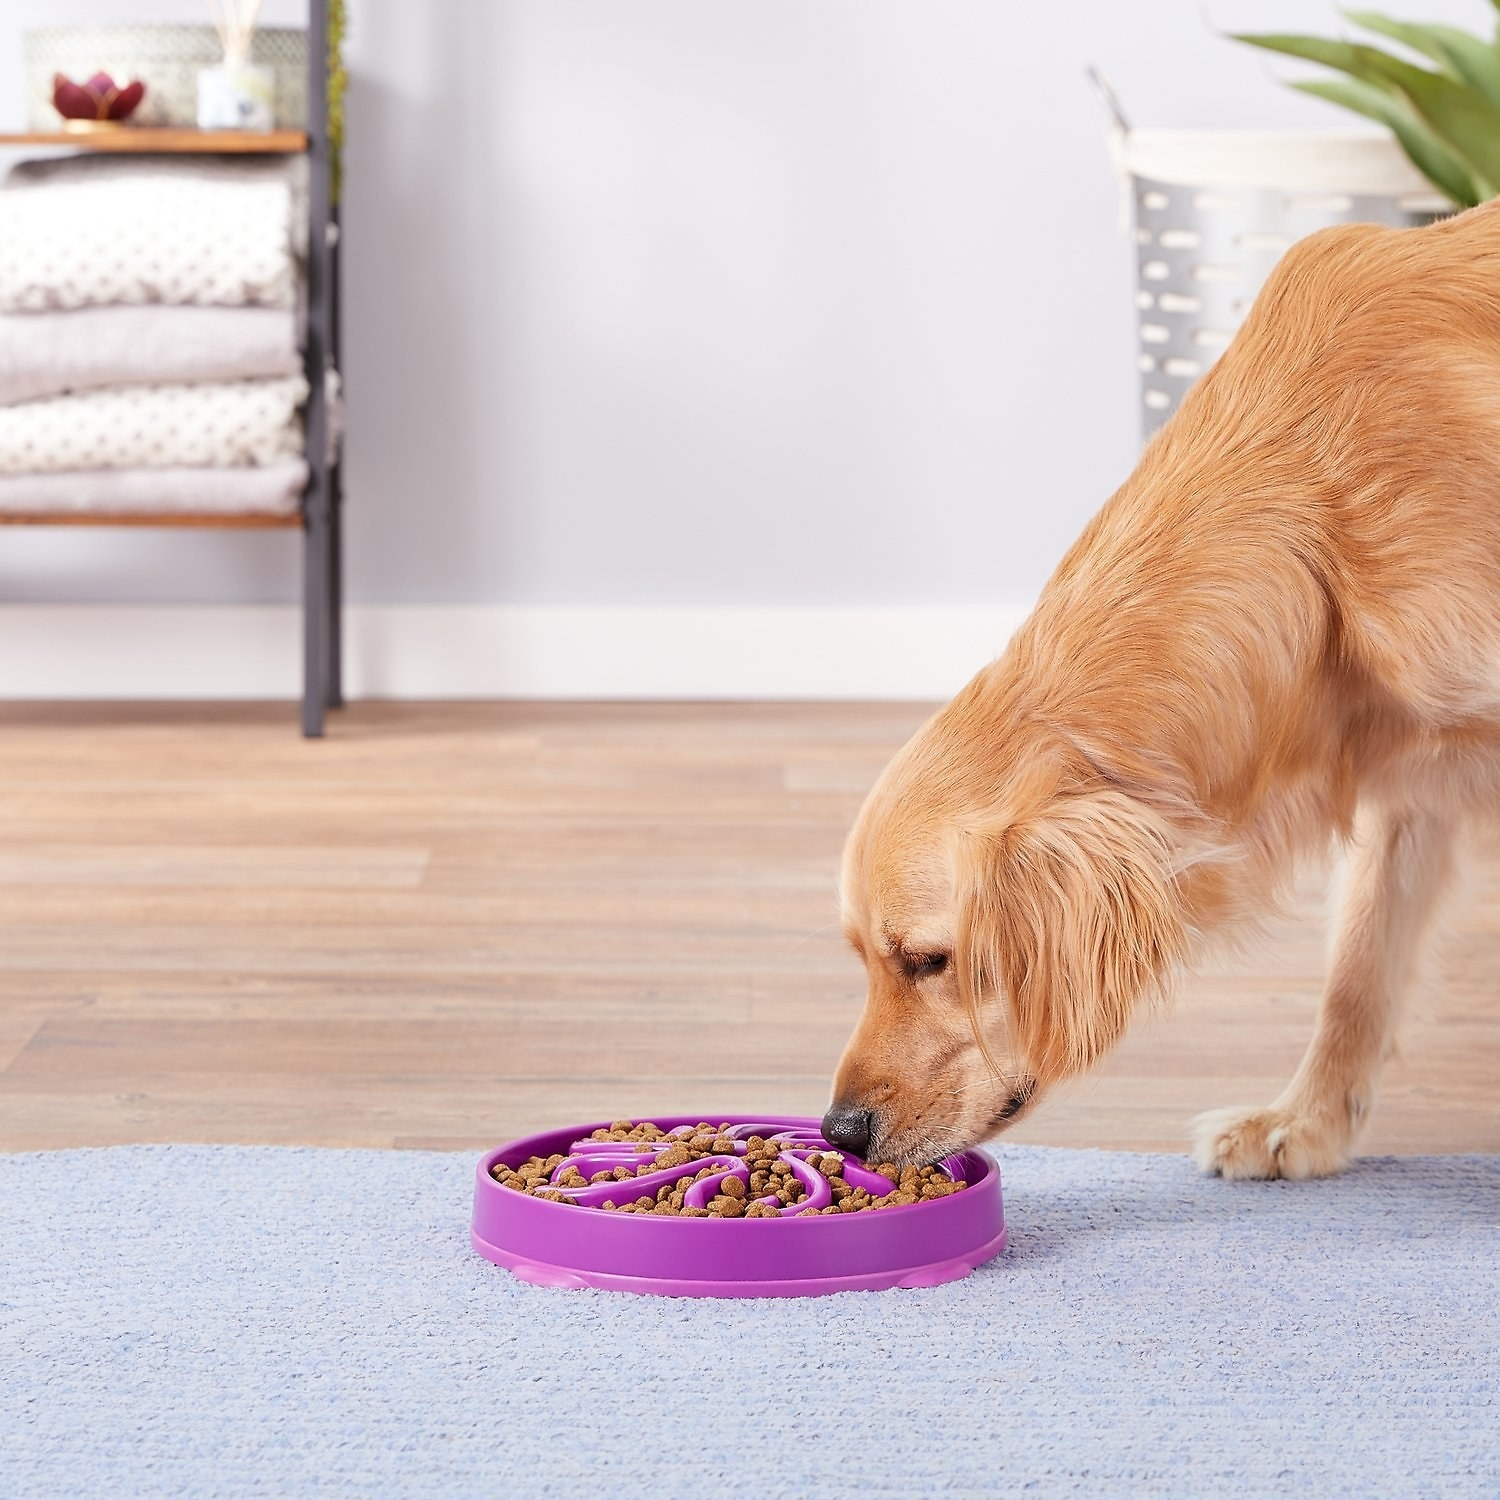 Golden retriever eating out of the ridged purple bowl